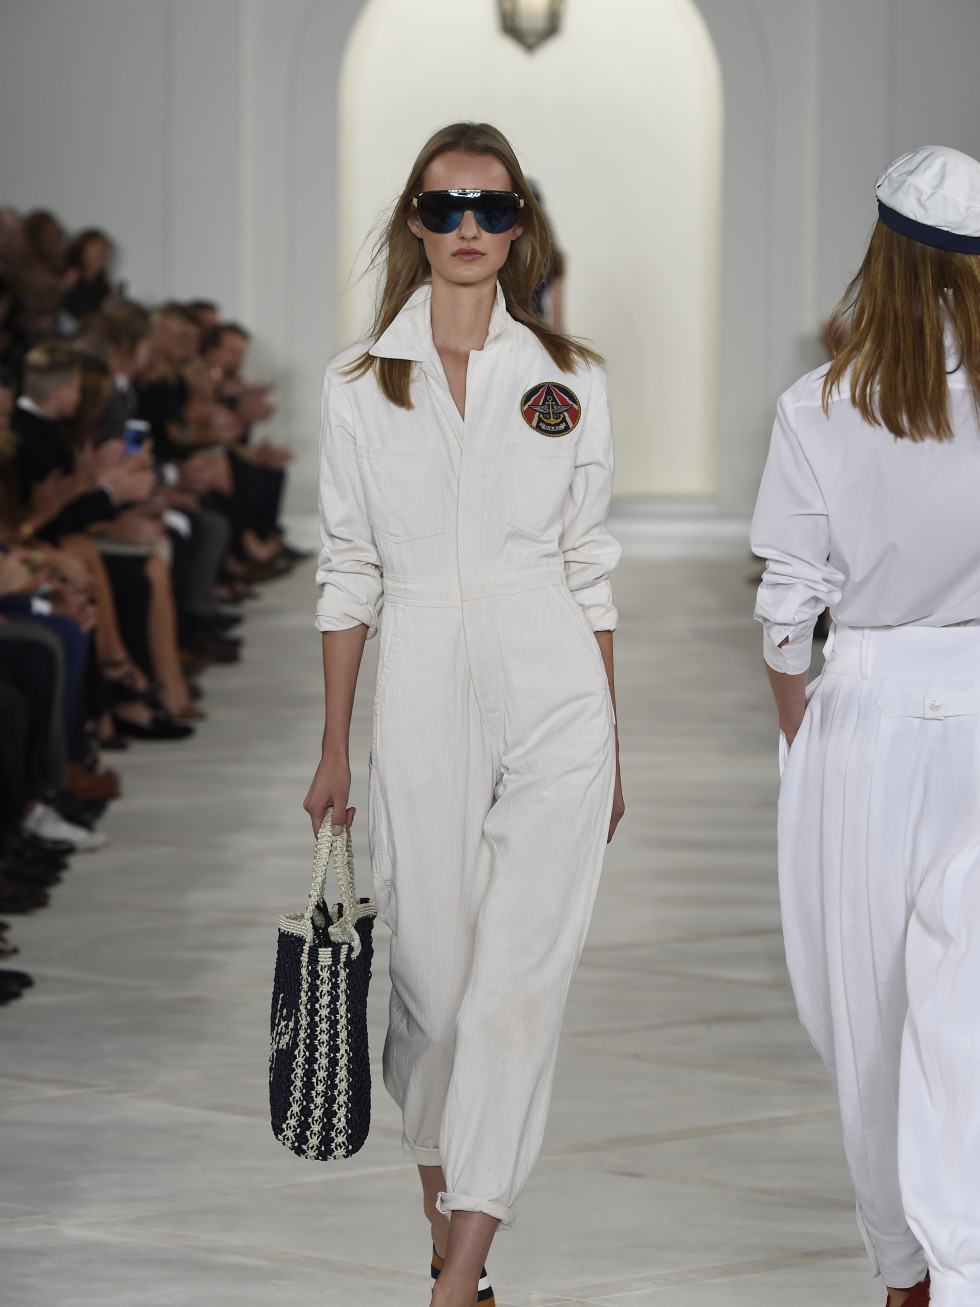 Ralph Lauren spring 2016 collection look 2